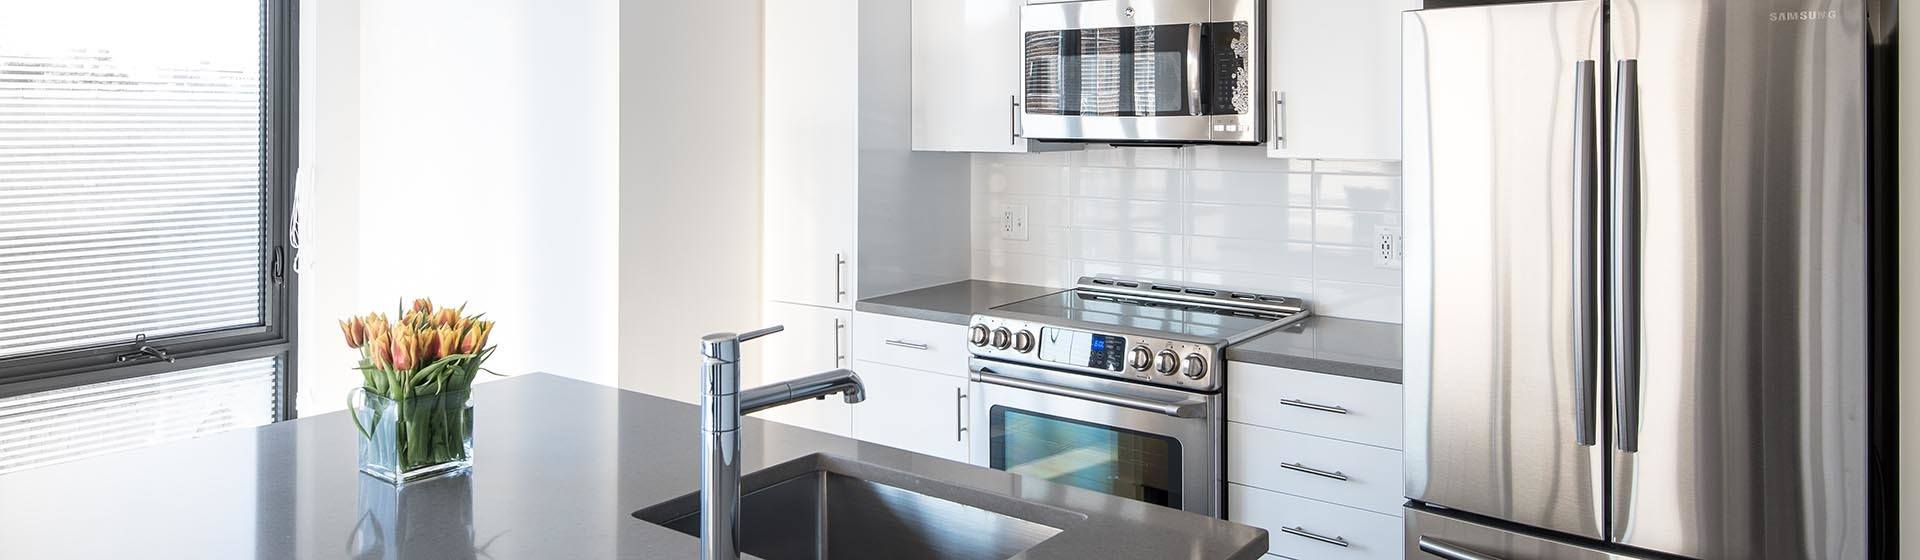 Modern apartments for rent in Washington D.C., with luxurious amenities